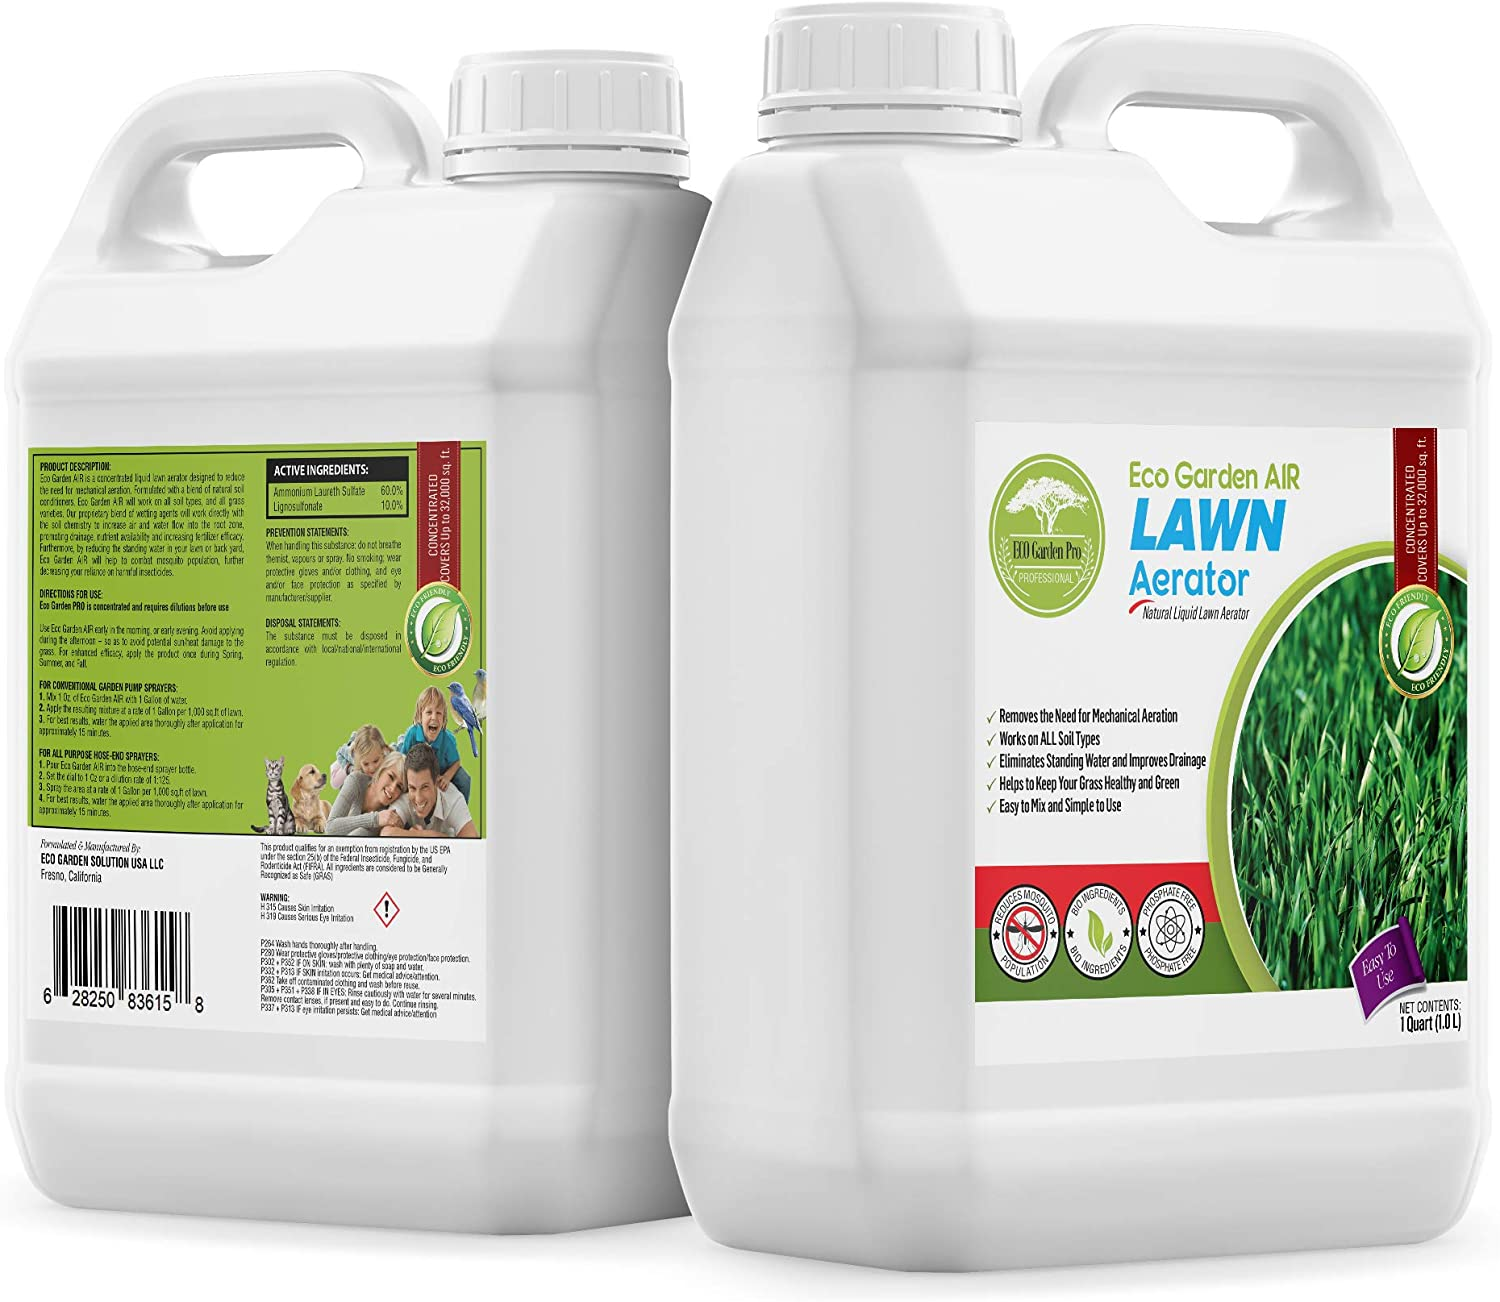 Eco Garden PRO Liquid Lawn Aerator - Liquid Conditioner | Treatment | Loosener | Improves Lawn Aeration & Drainage | Alternative to Manual Lawn Aerators - 1 Quart